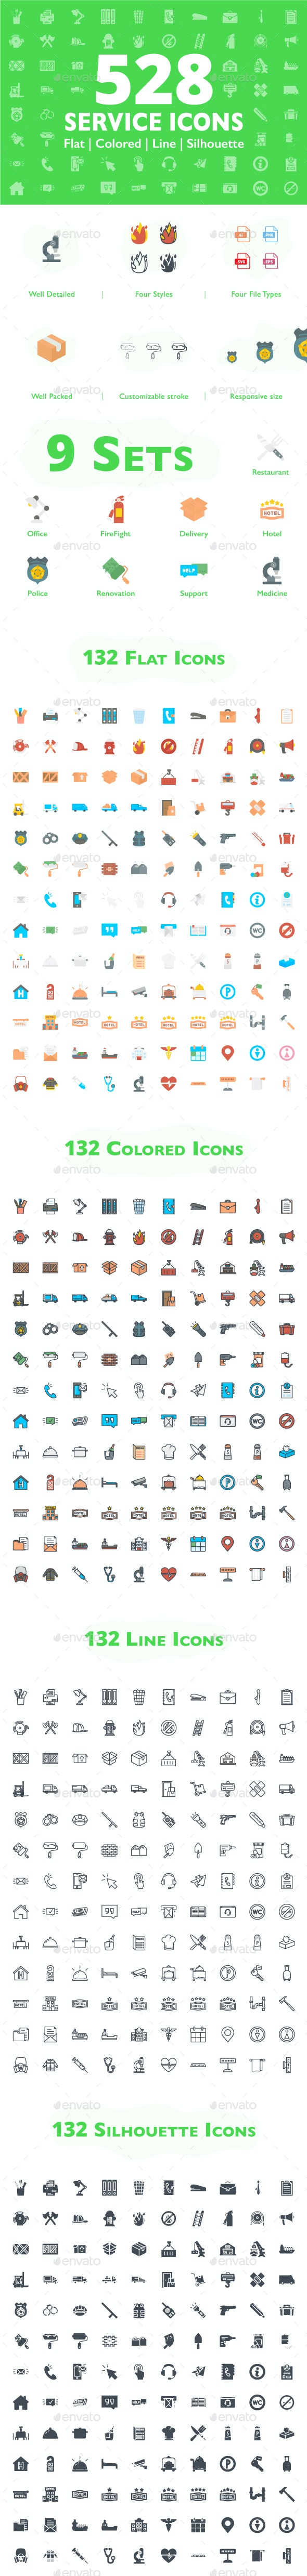 528 Service Icons - Icons